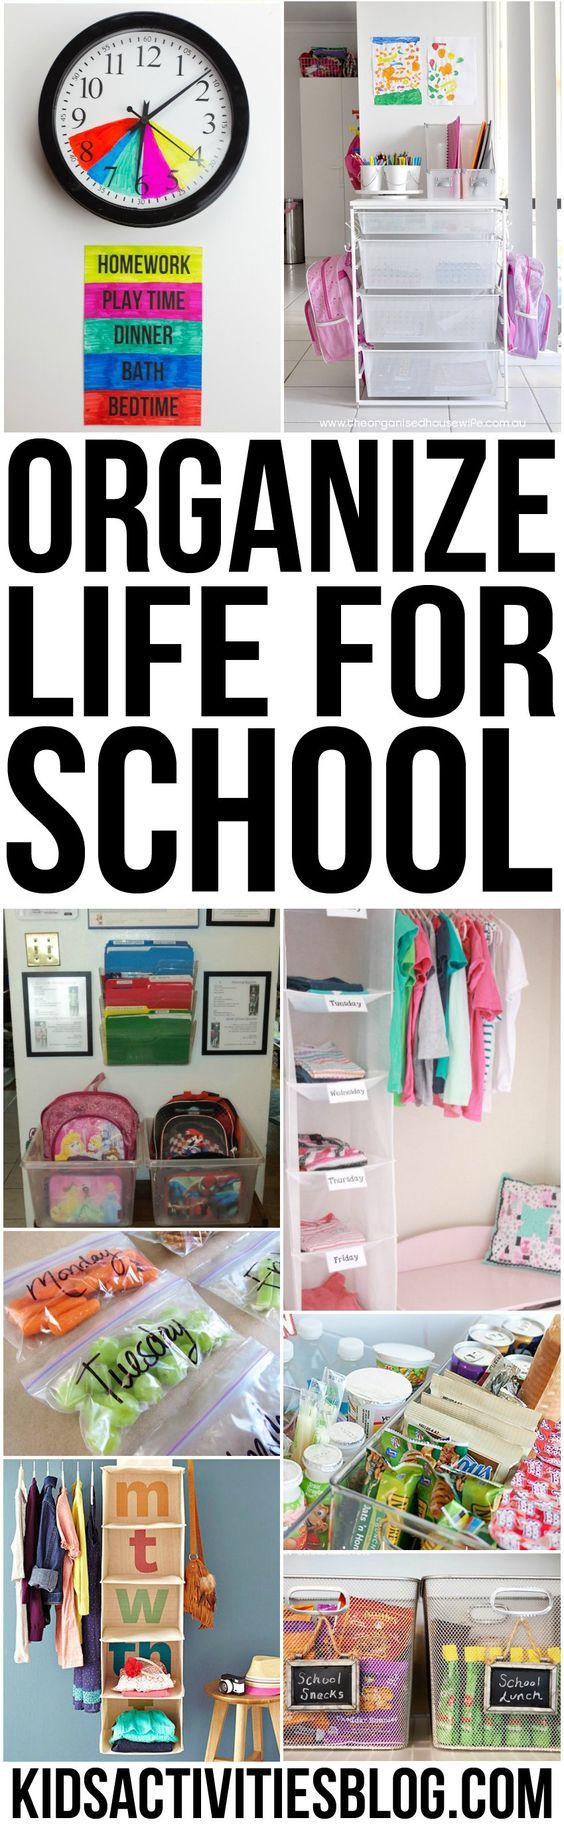 We are beginning kindergarten with two of my kiddos and are busy organizing life…